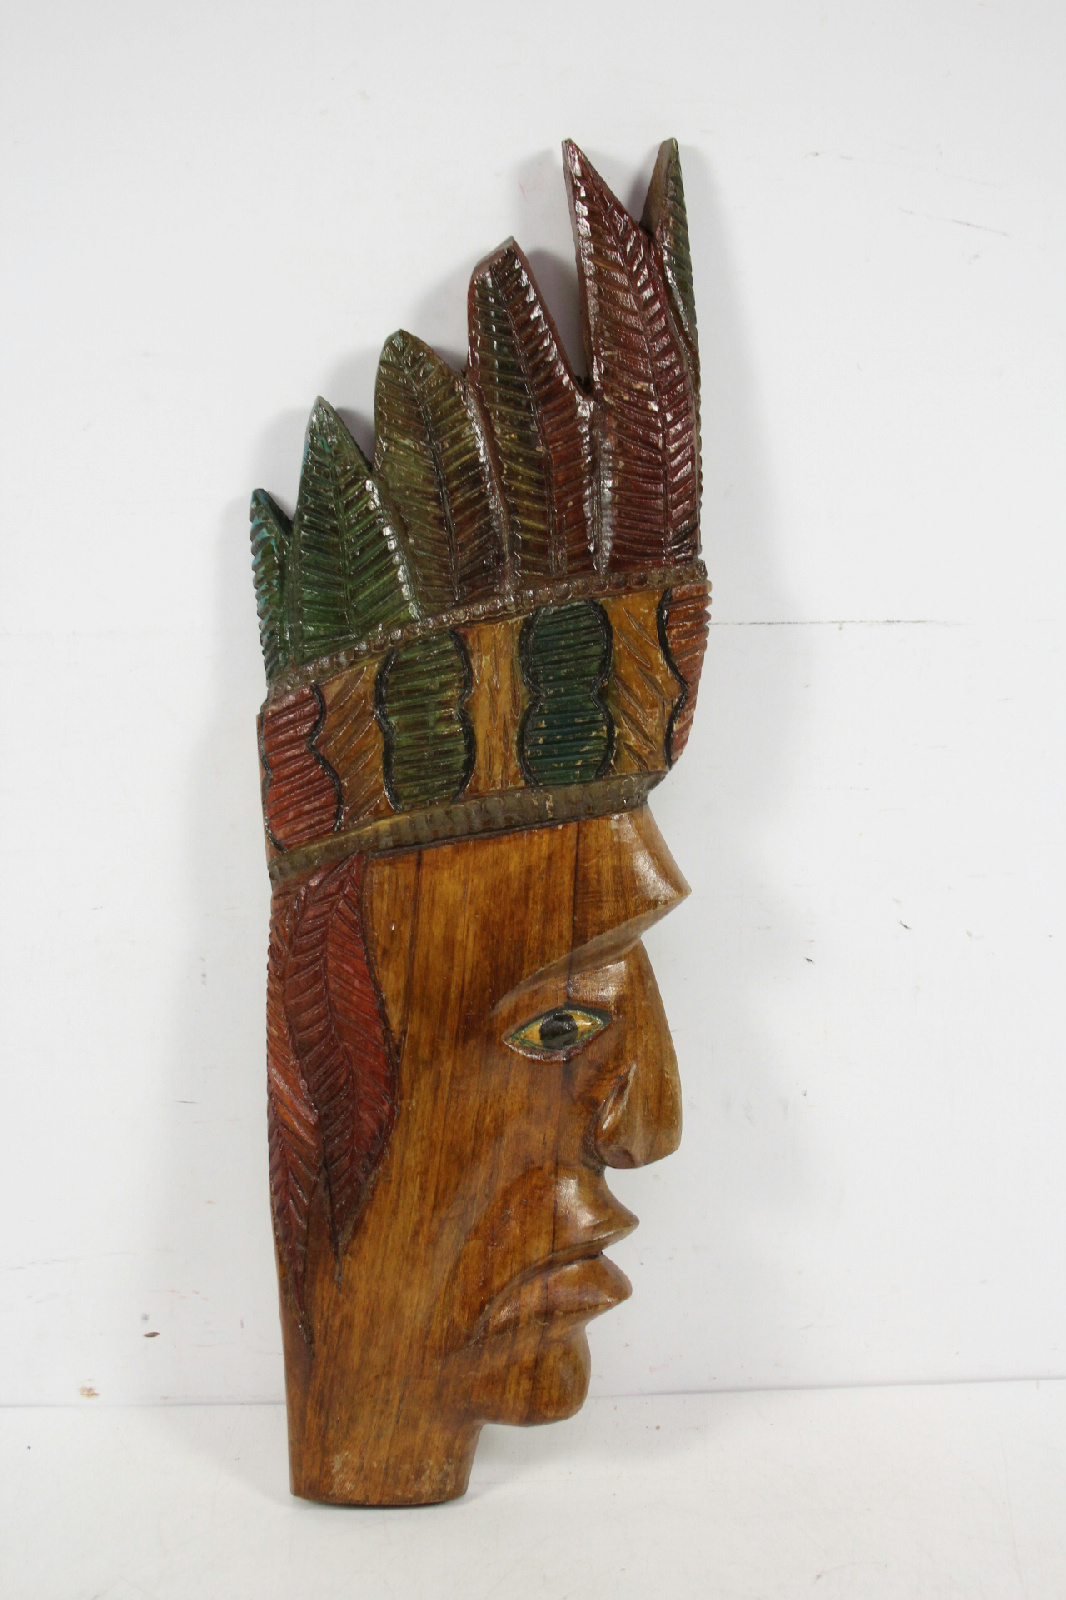 Carved Wood Wall Hanging Hand Carved Folk Art Indian Wood Wall Hanging Sculpture